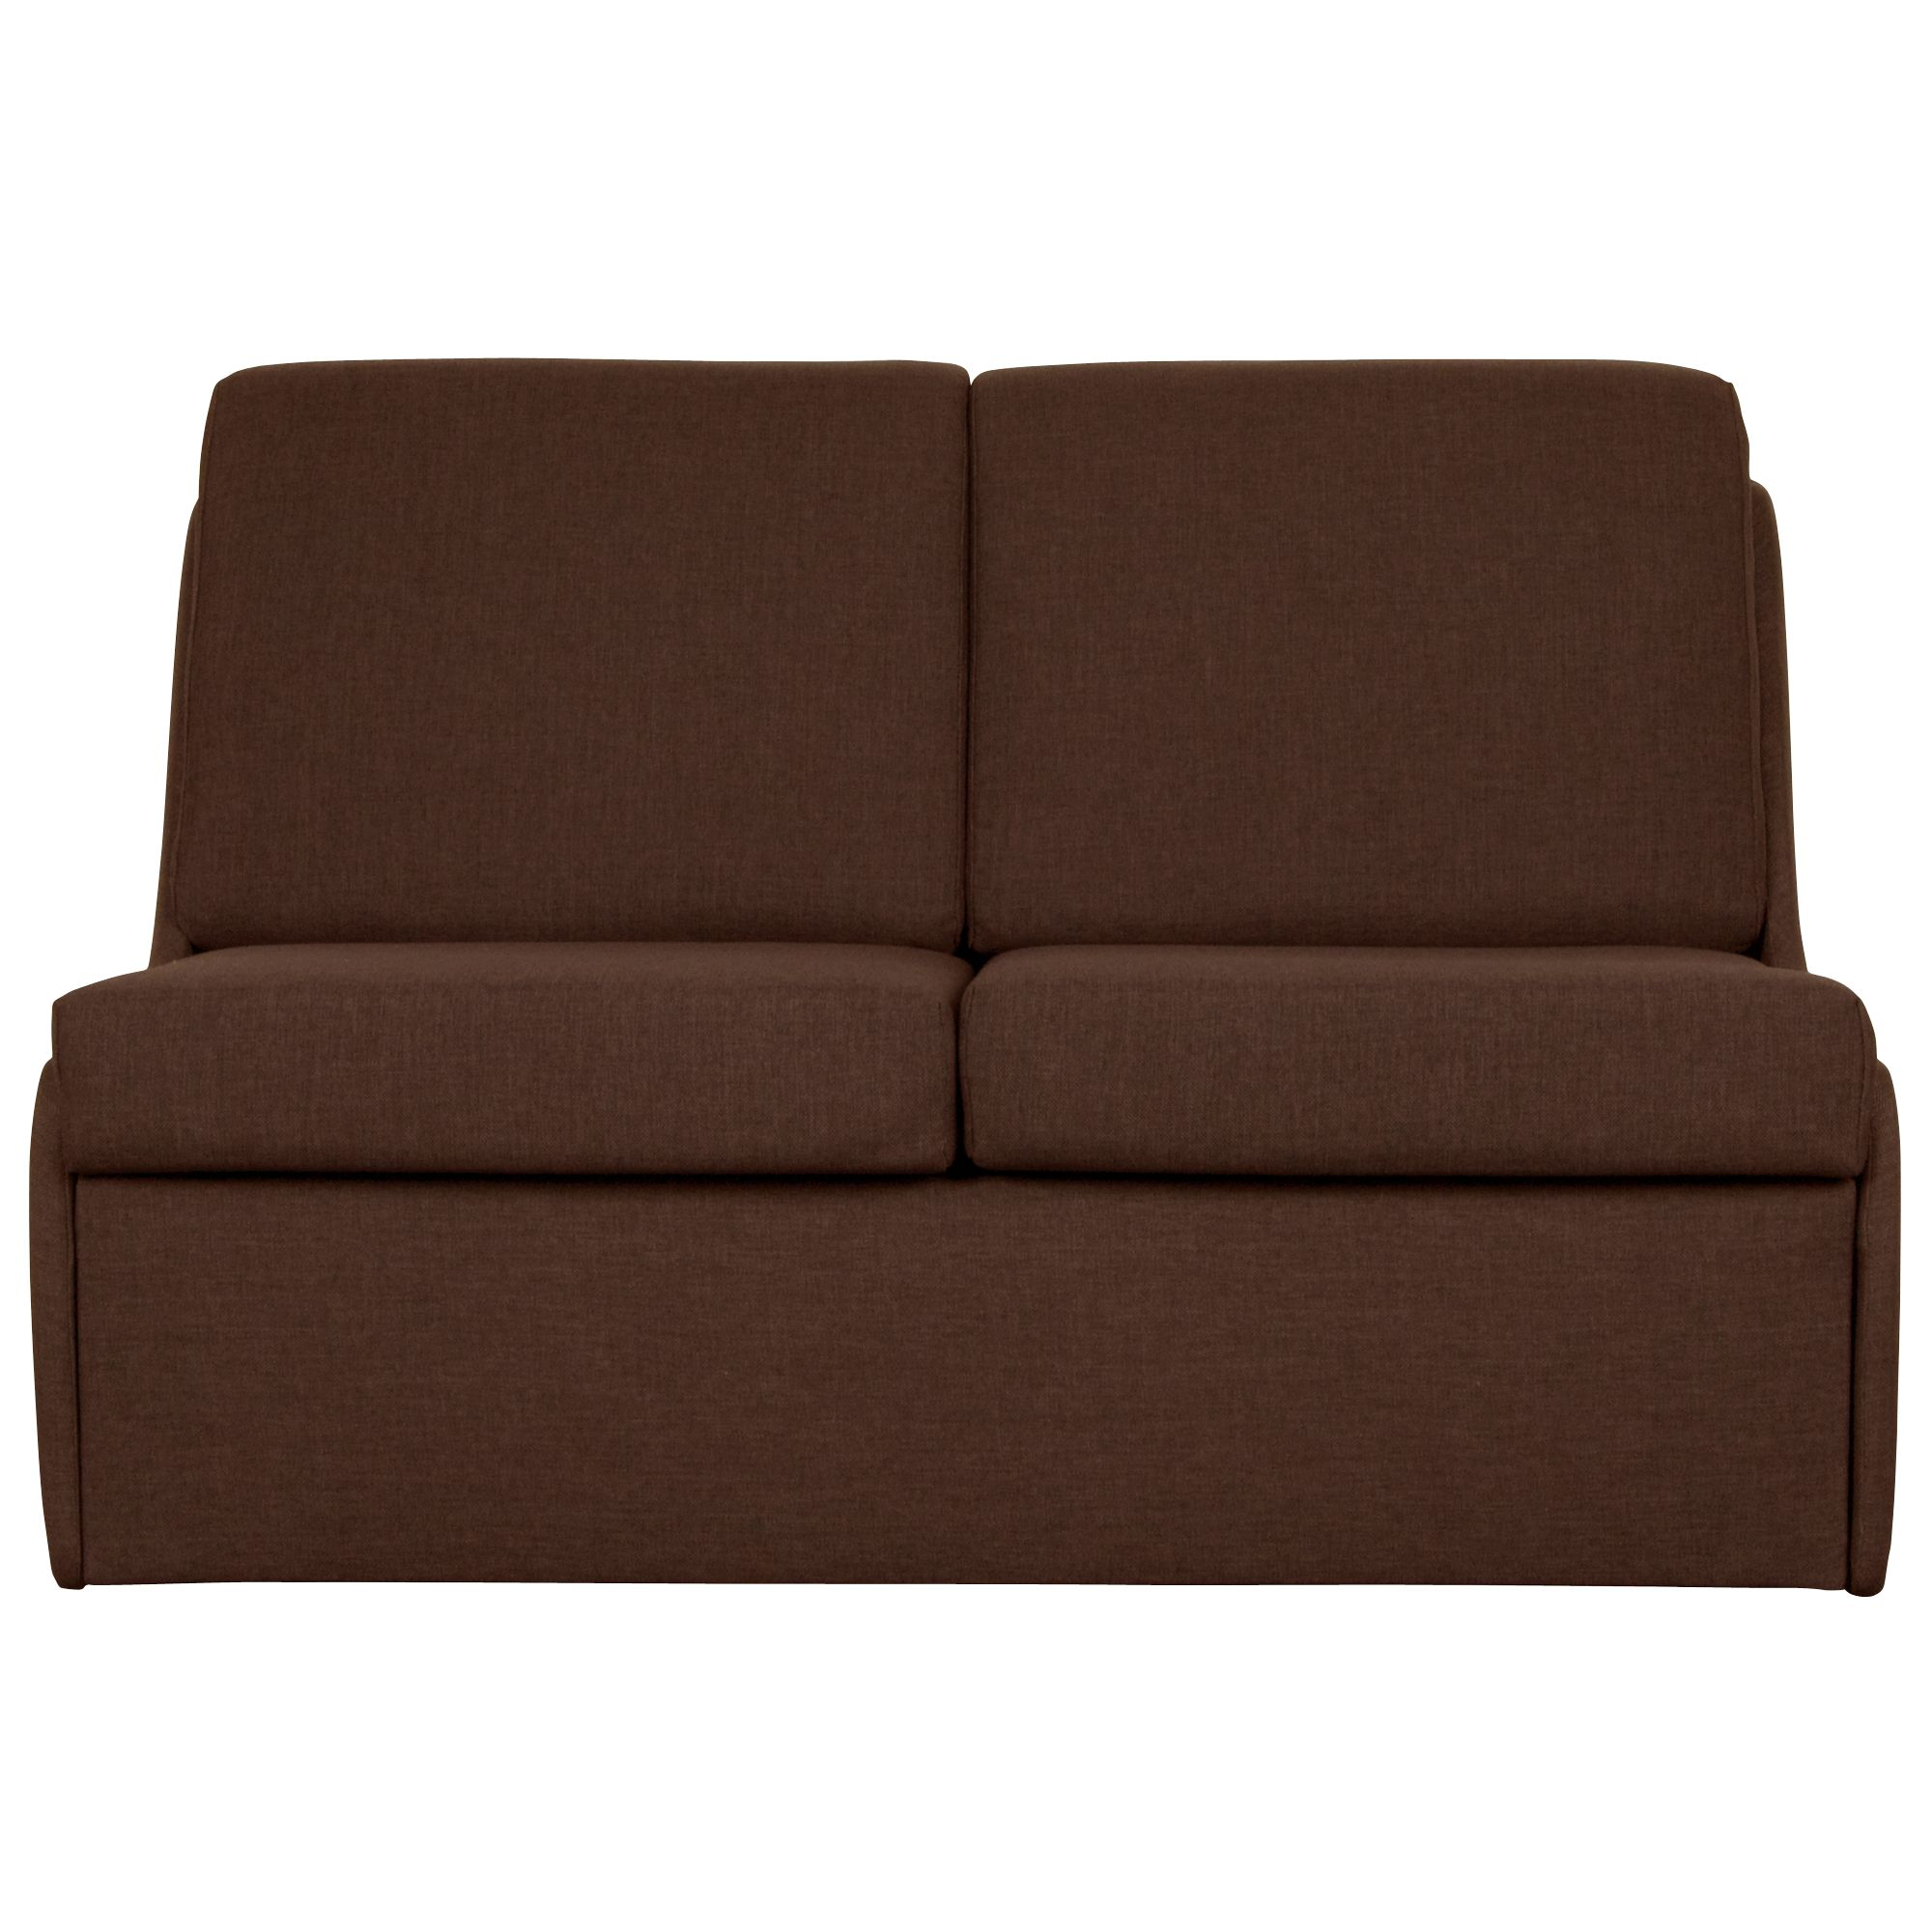 John lewis jessie sofa bed oslo chocolate review for Sofa bed john lewis